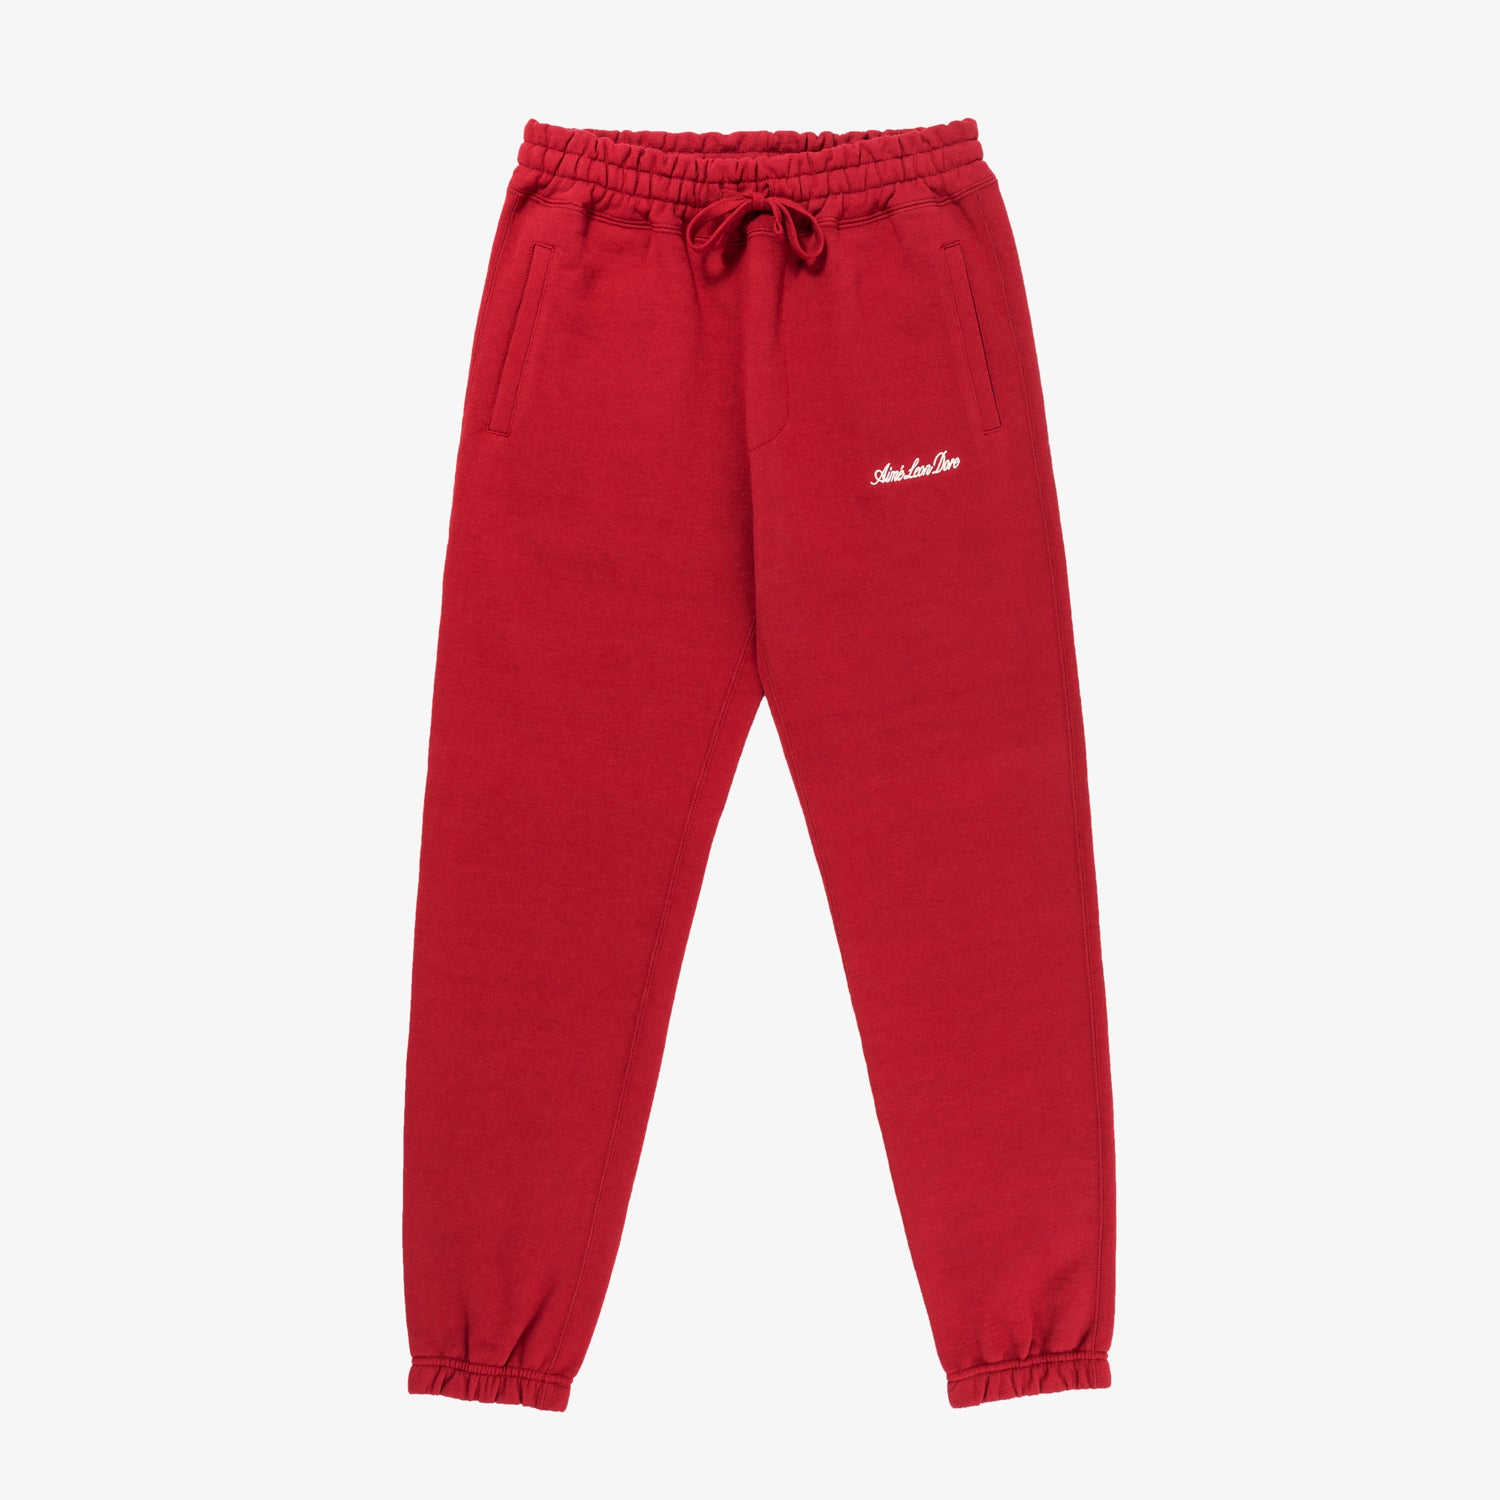 SCRIPT LOGO SWEATS - RED